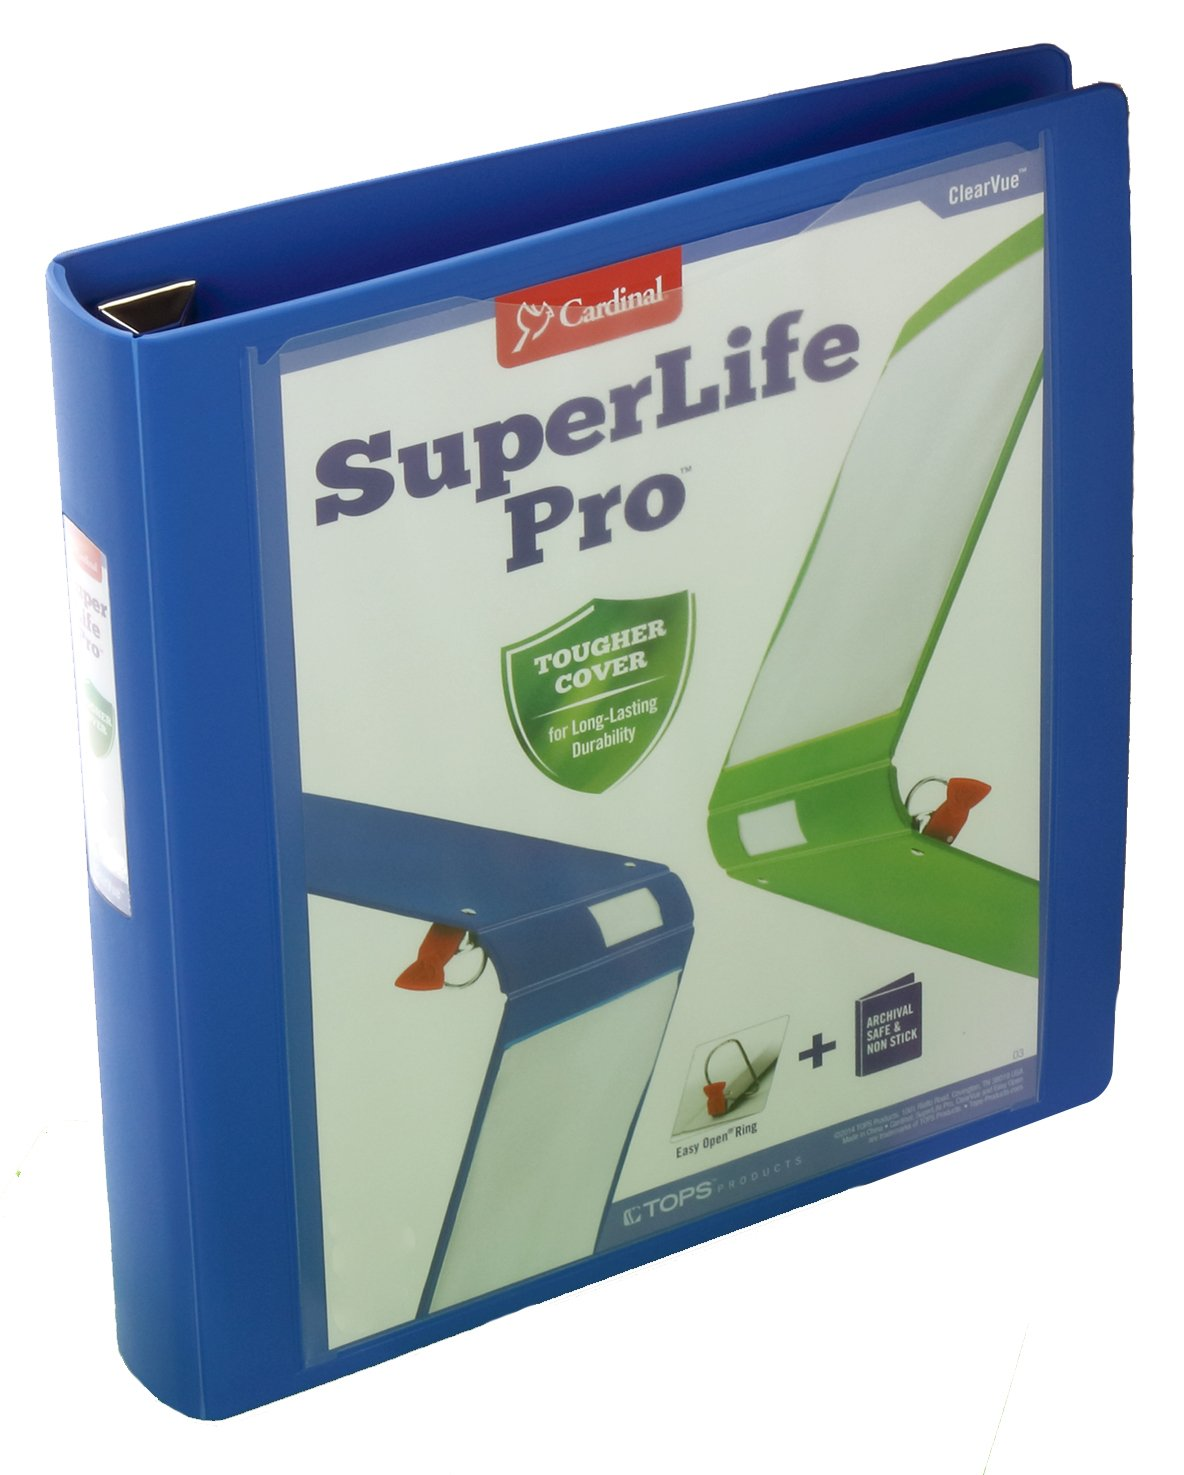 Cardinal SuperLife Pro Easy Open ClearVue Locking Slant-D Ring Binder, 1.5 Inch, Blue (54420)